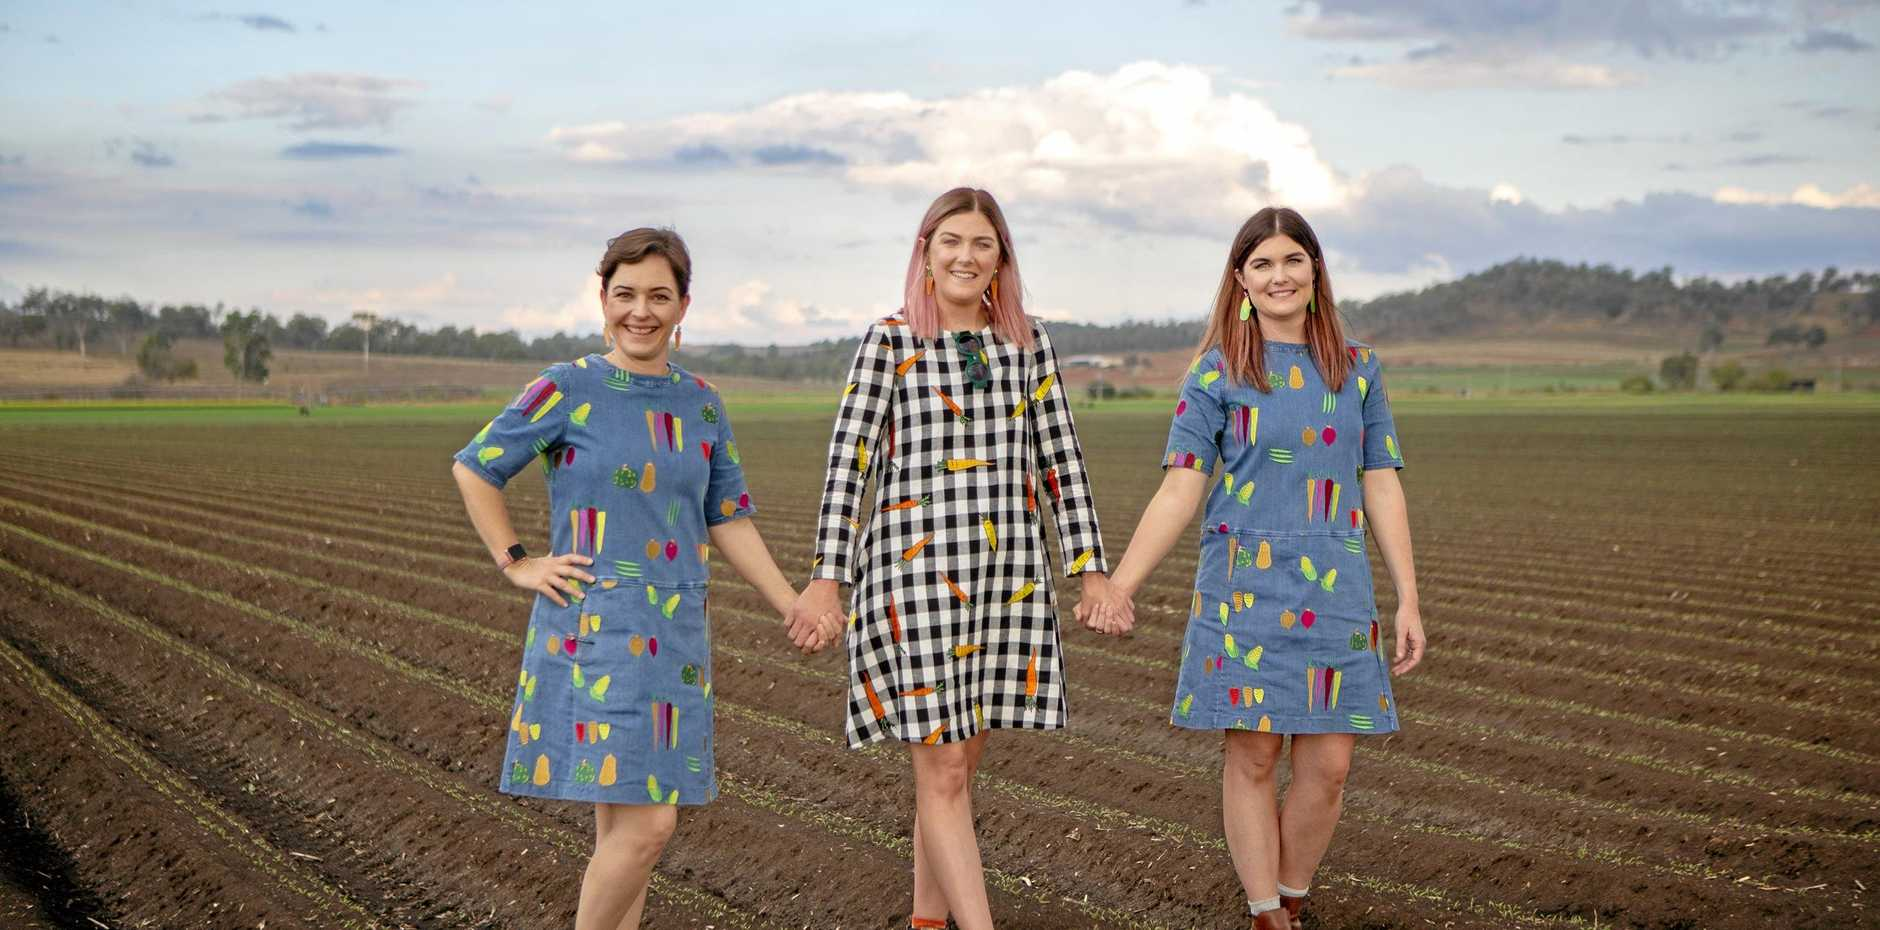 Event coordinator Genevieve Windley is pictured with Chloe Rowe and Kate Russell of Brisbane-based fashion label Jericho Road Clothing.